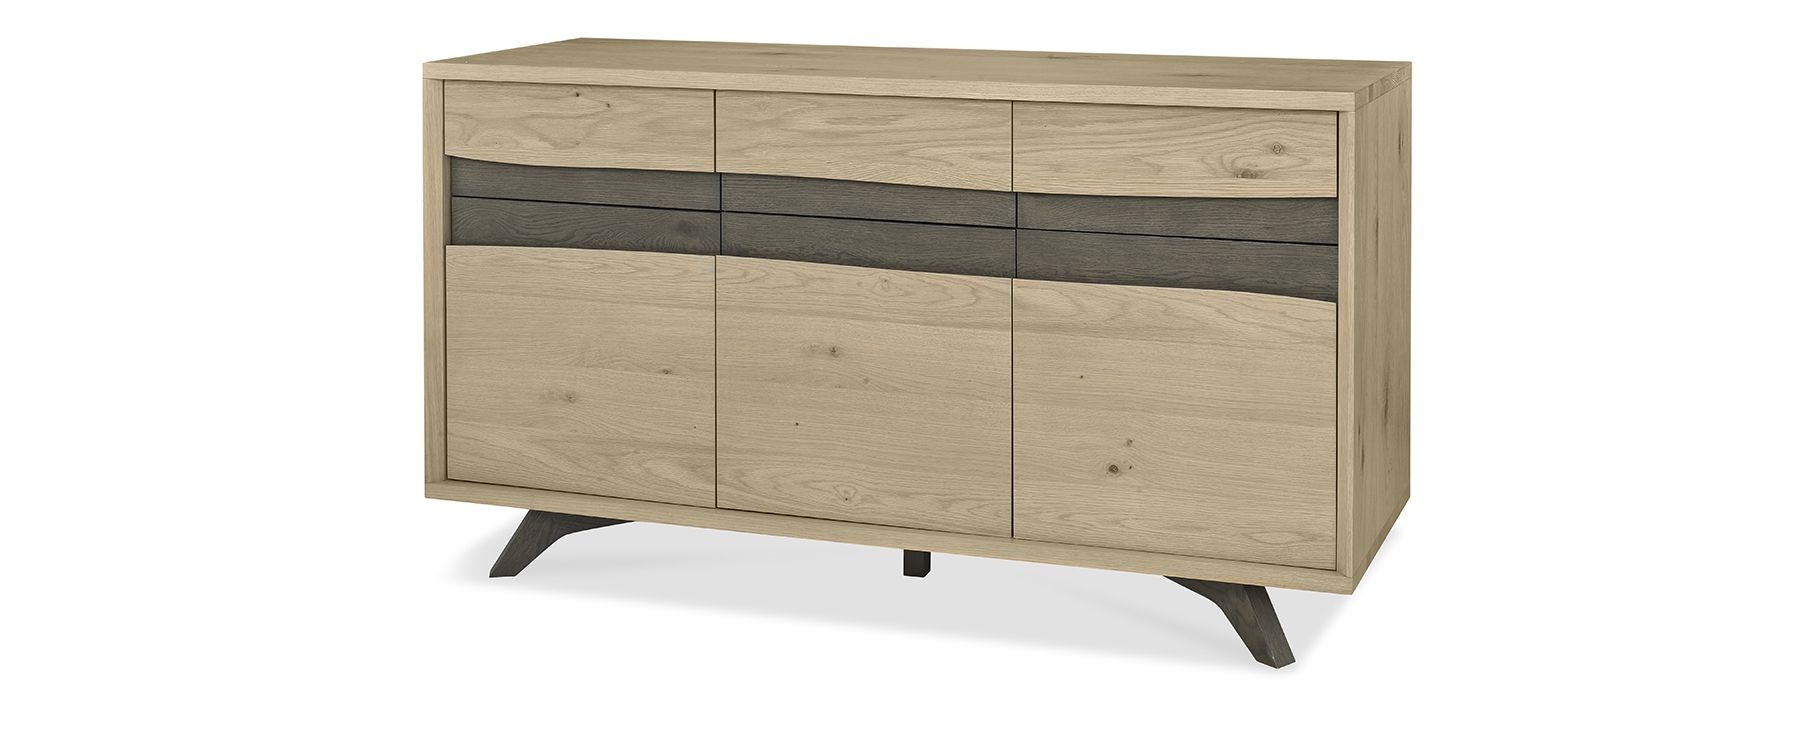 CARELL WIDE SIDEBOARD L150cm x D49cm xH82cm - ANGLE DETAIL